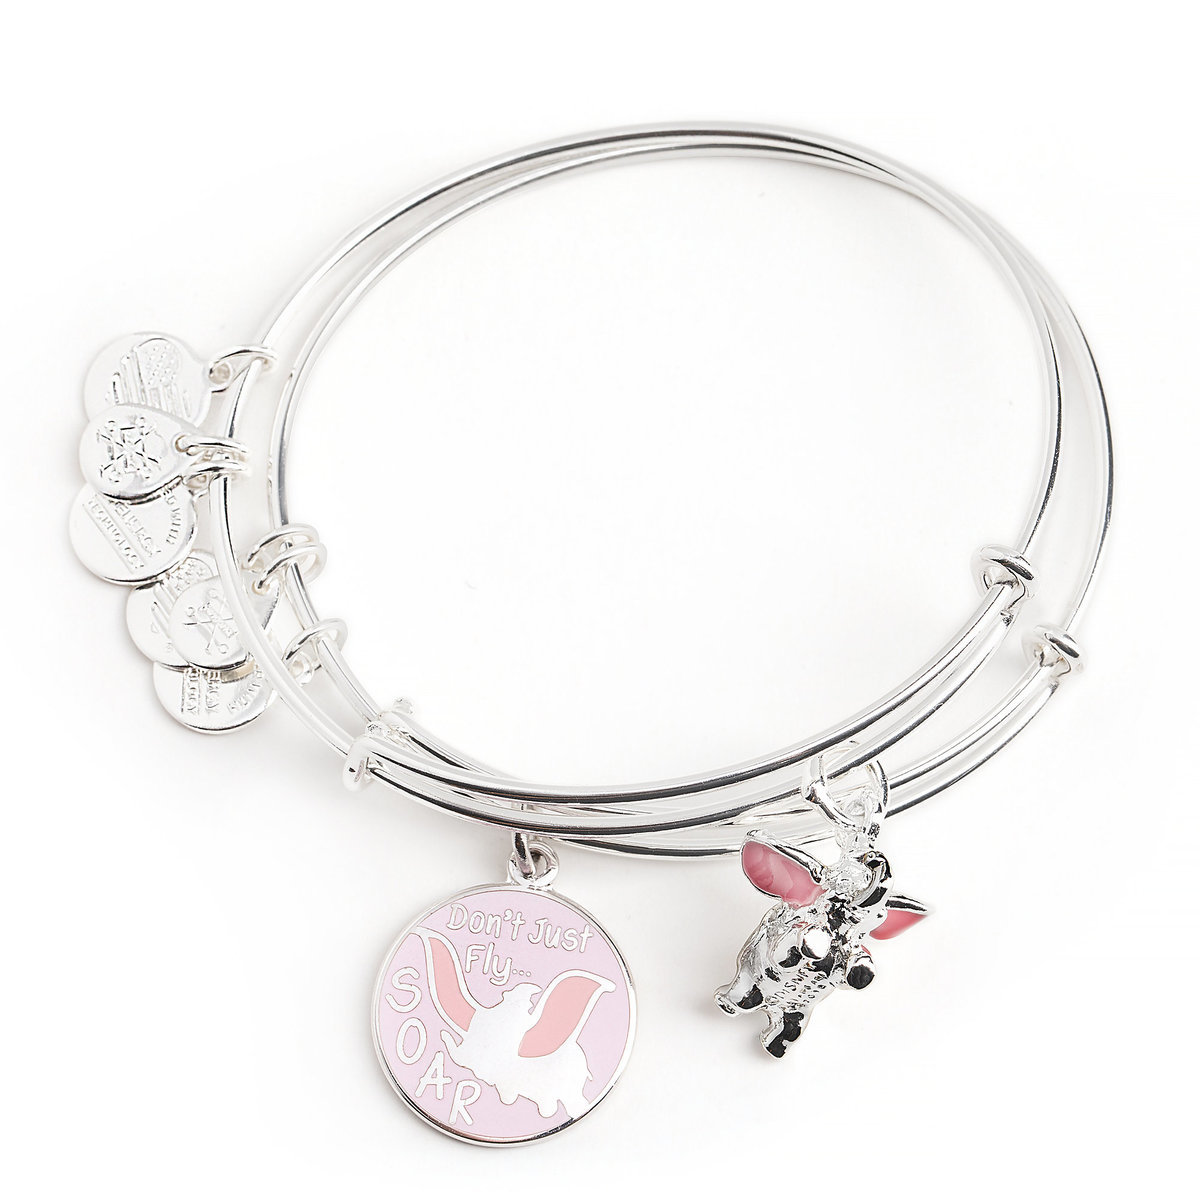 0bca2d81863a4 Dumbo Bangle Set by Alex and Ani